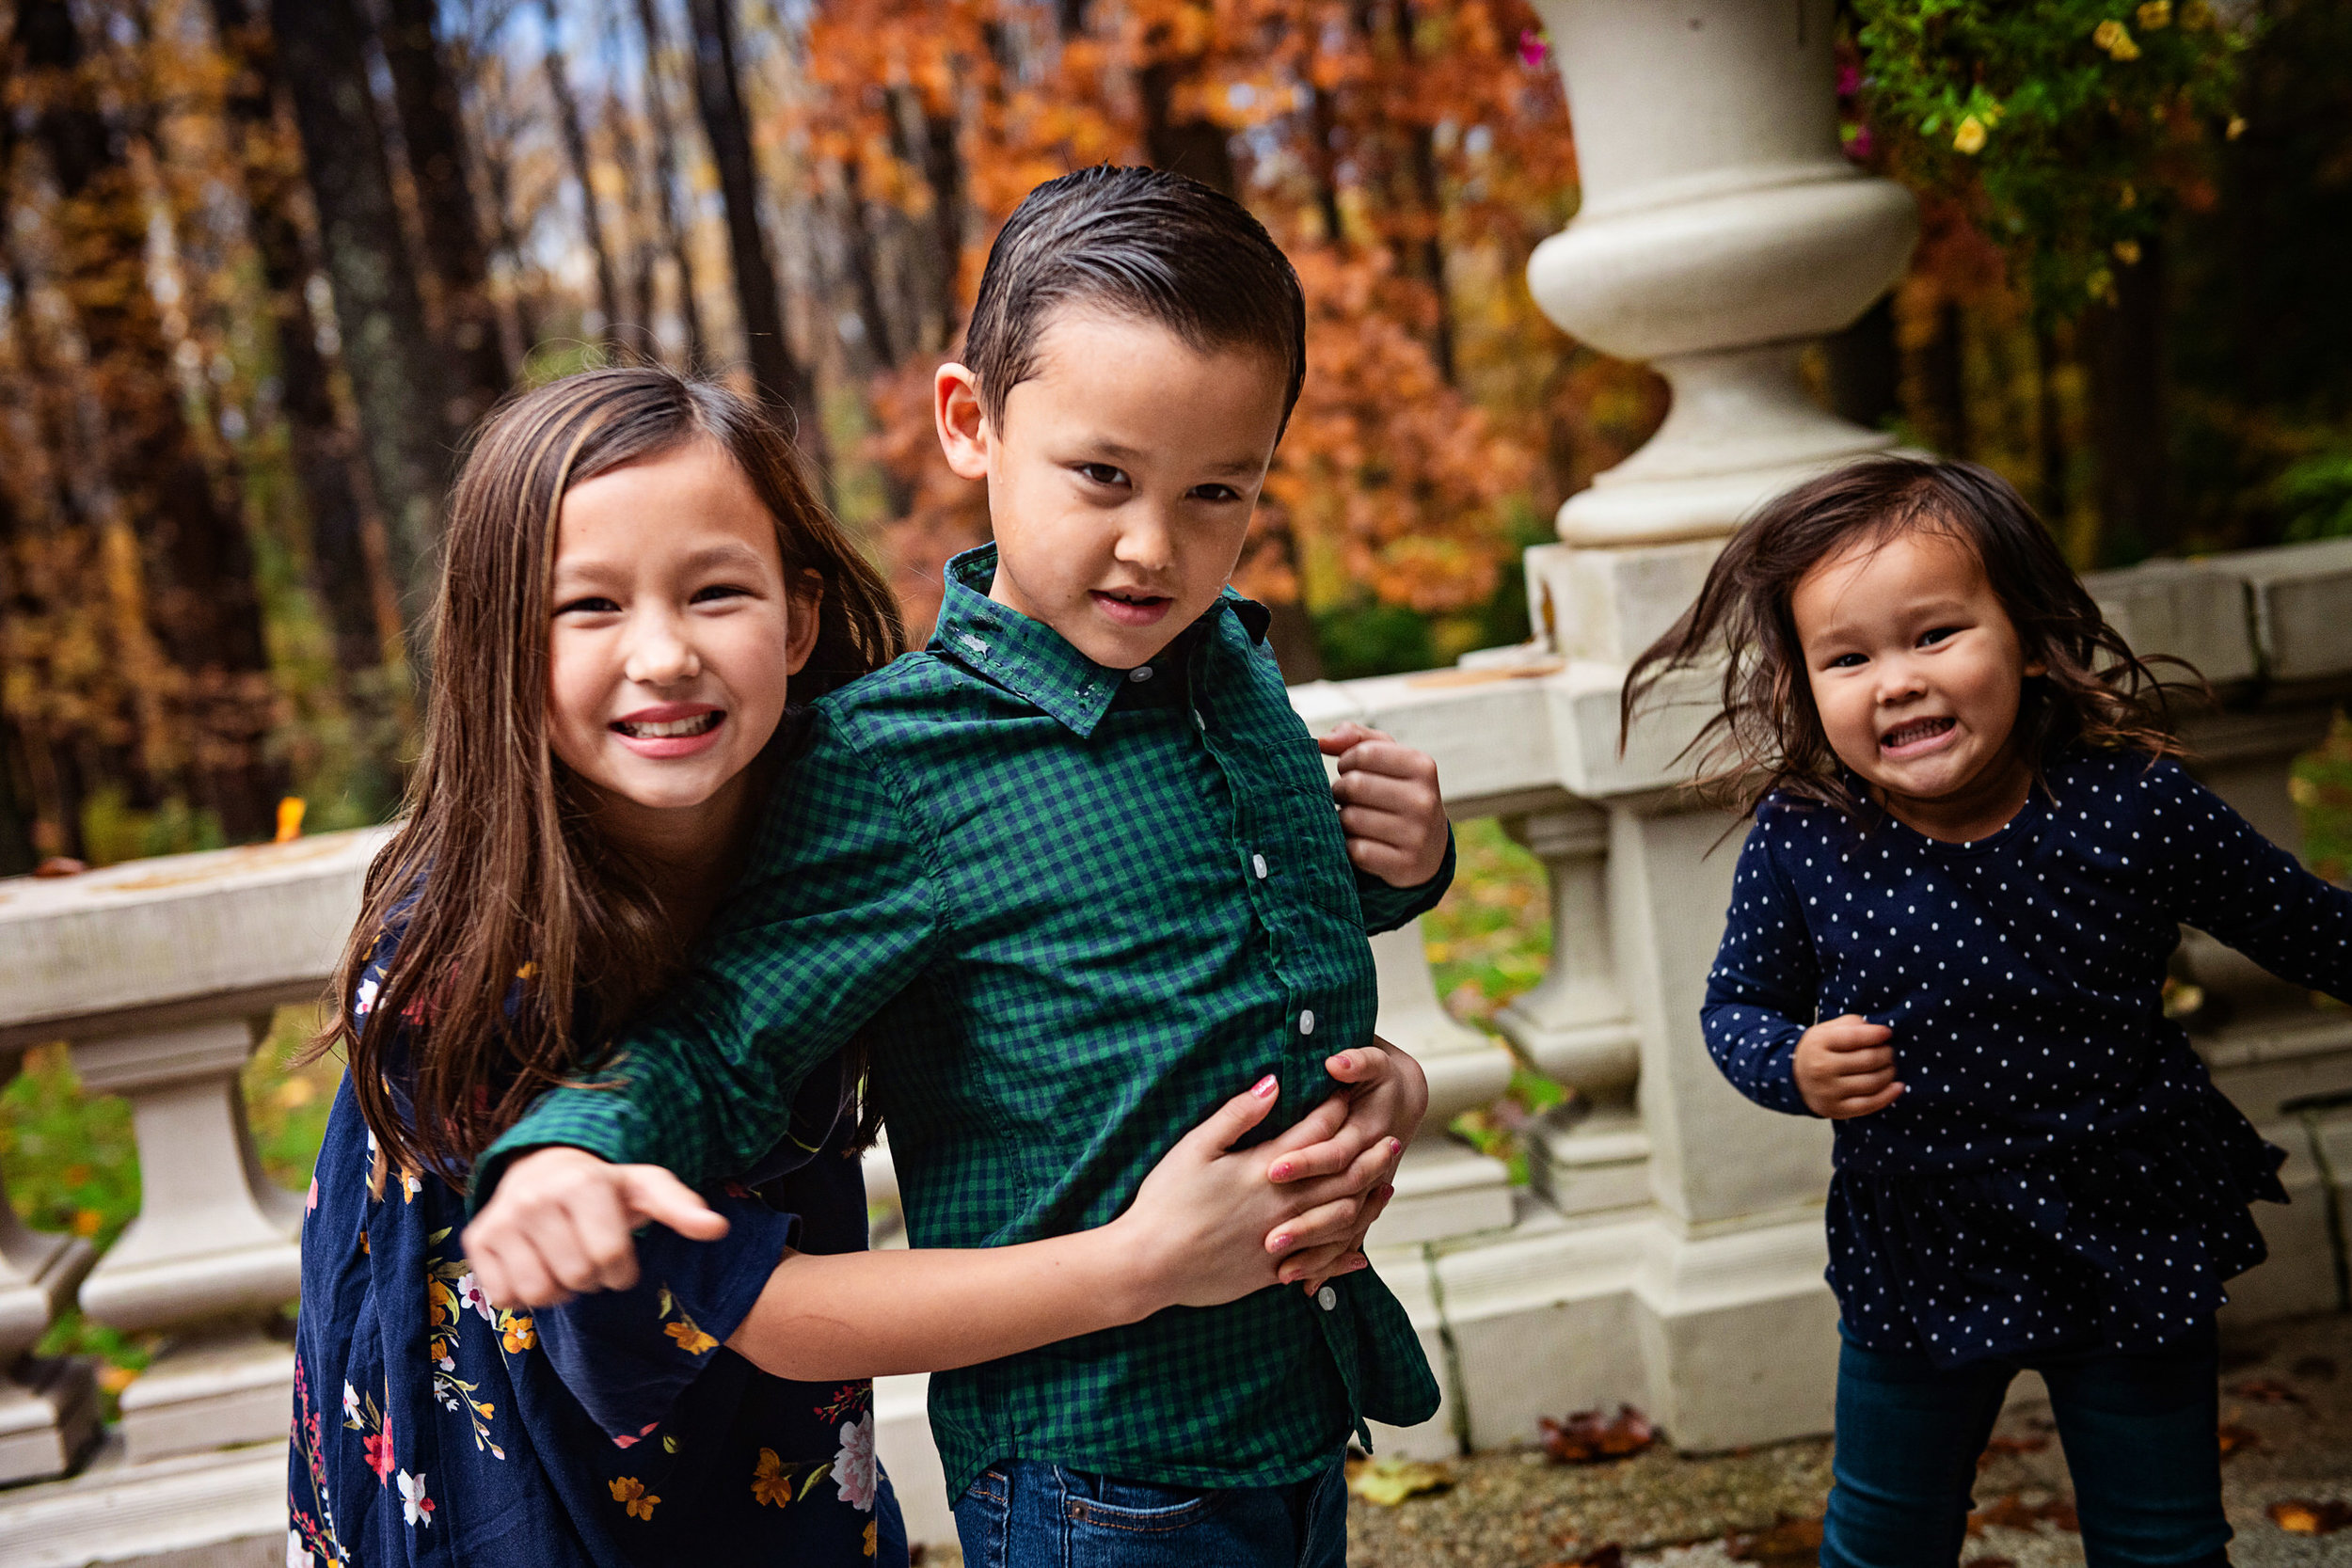 MarylandFamilyPhotography-LienFamily2018-51.jpg